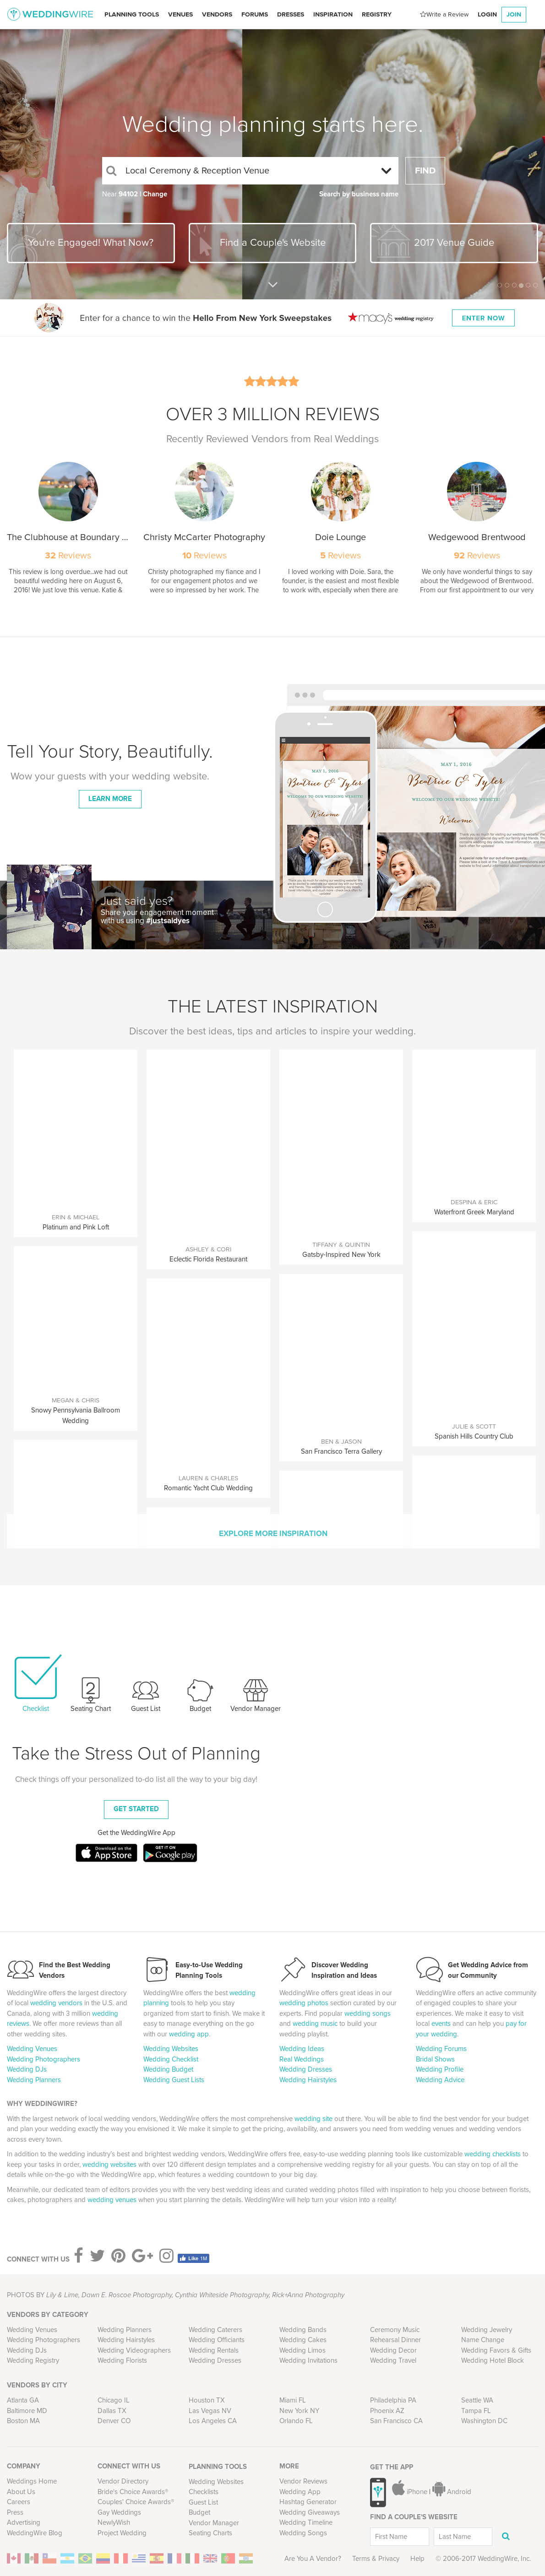 WeddingWire Competitors, Revenue and Employees - Owler Company Profile